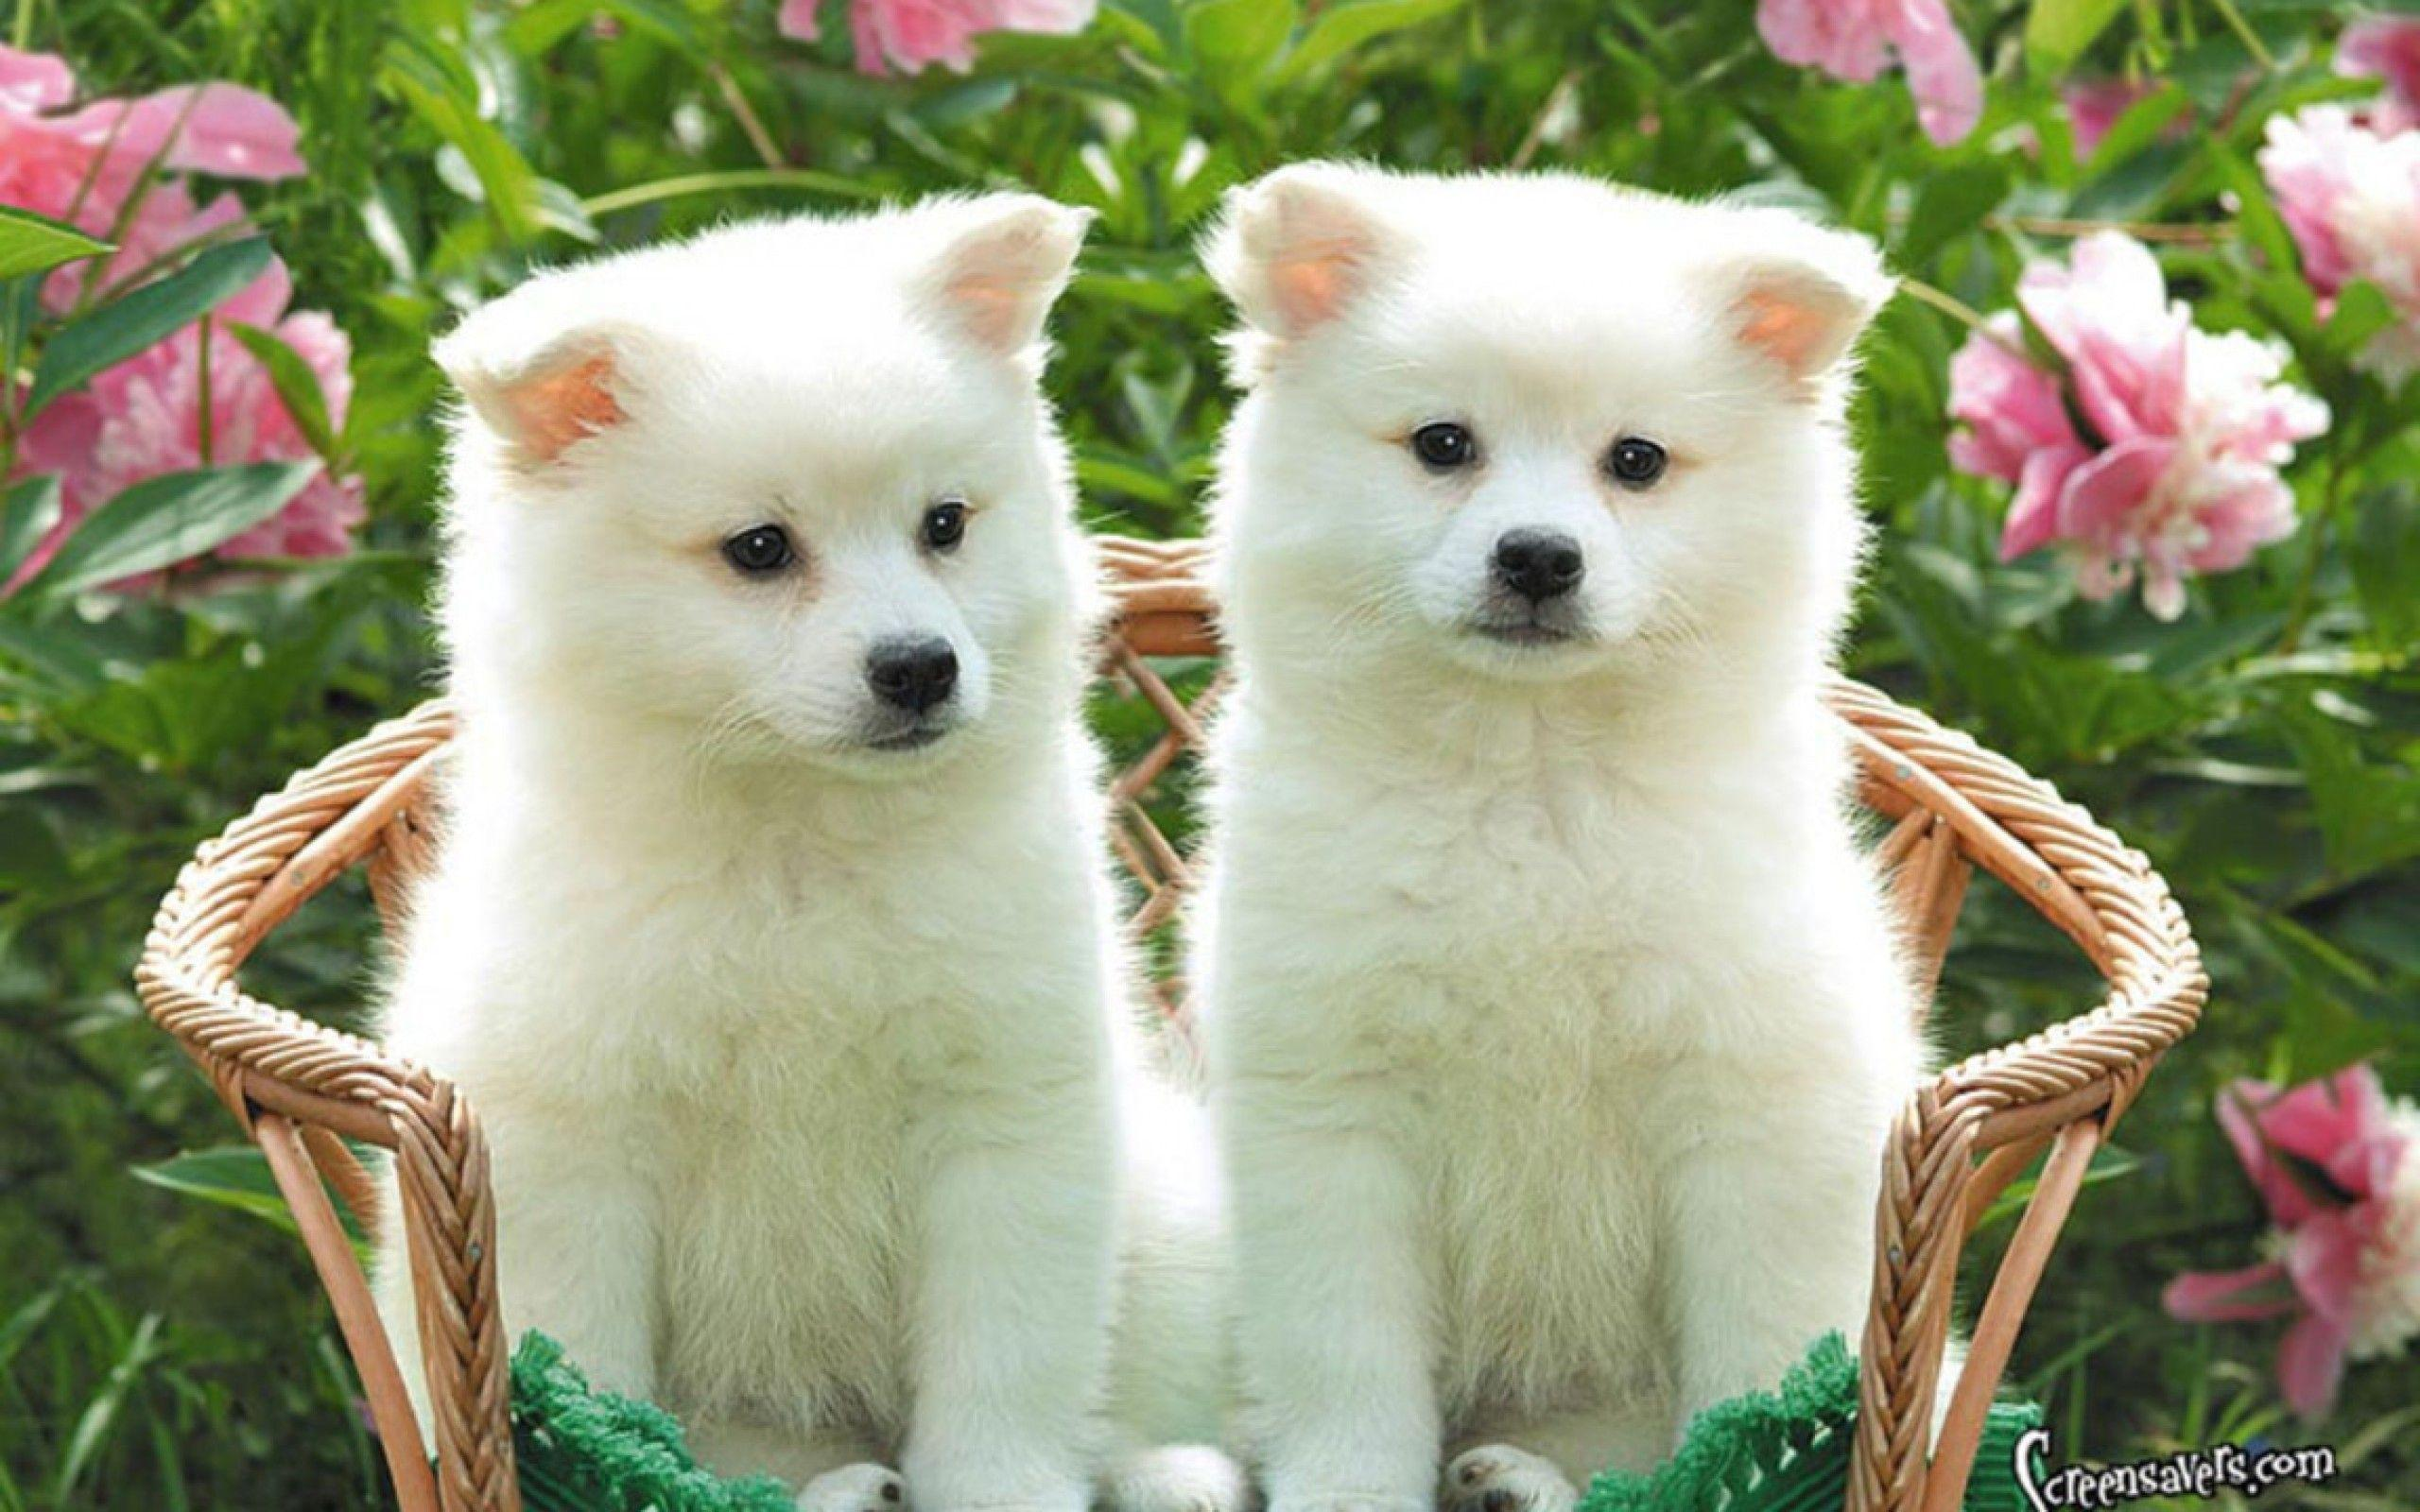 Wallpapers For > Hd Wallpapers Of Puppies